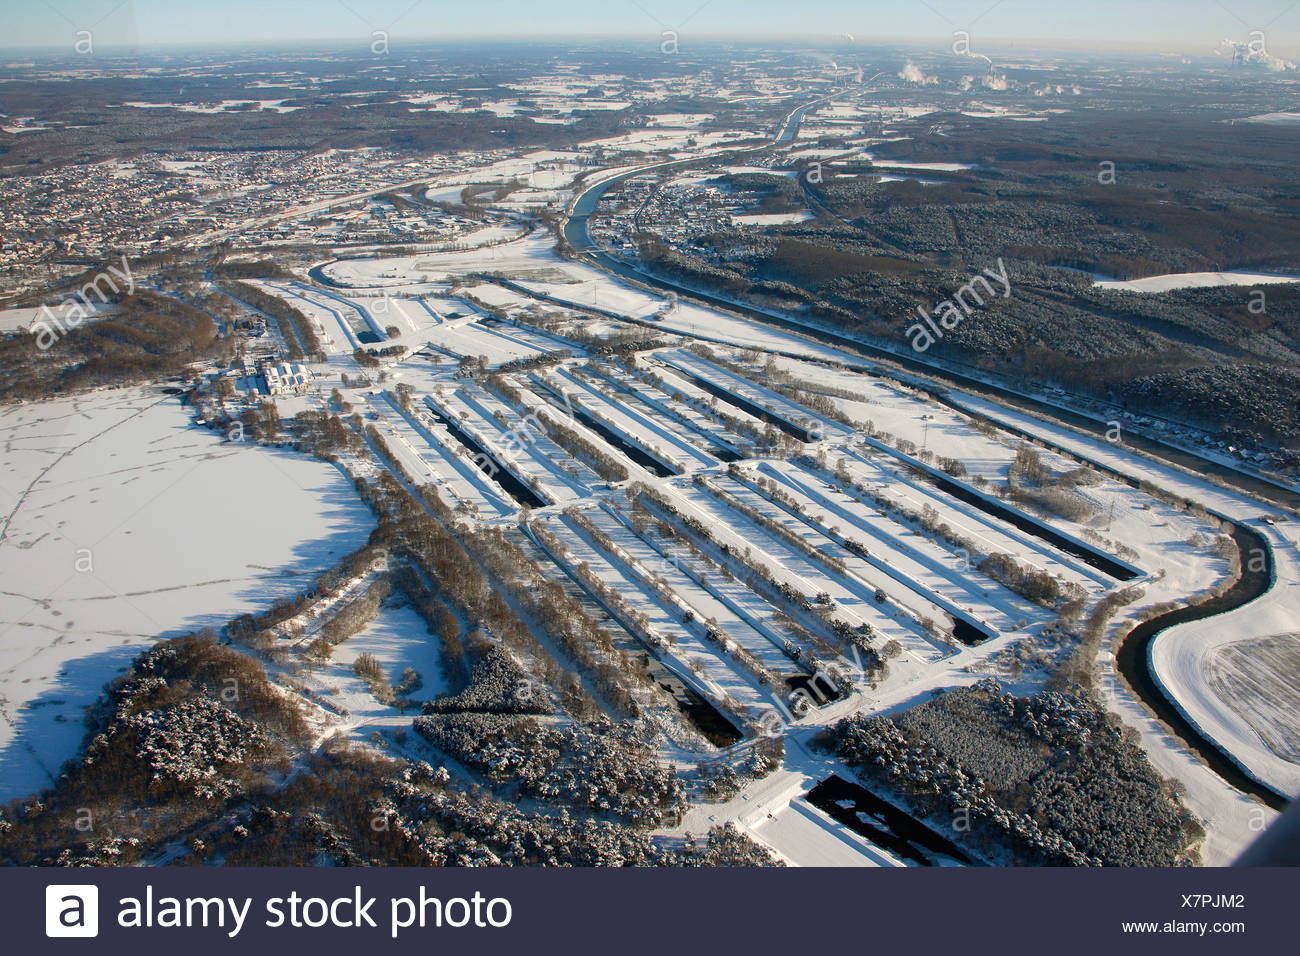 Aerial photo, Gelsenwerk sewage treatment plant, Haltern storage lake, snow, Haltern, Ruhr Area, North Rhine-Westphalia, German - Stock Image